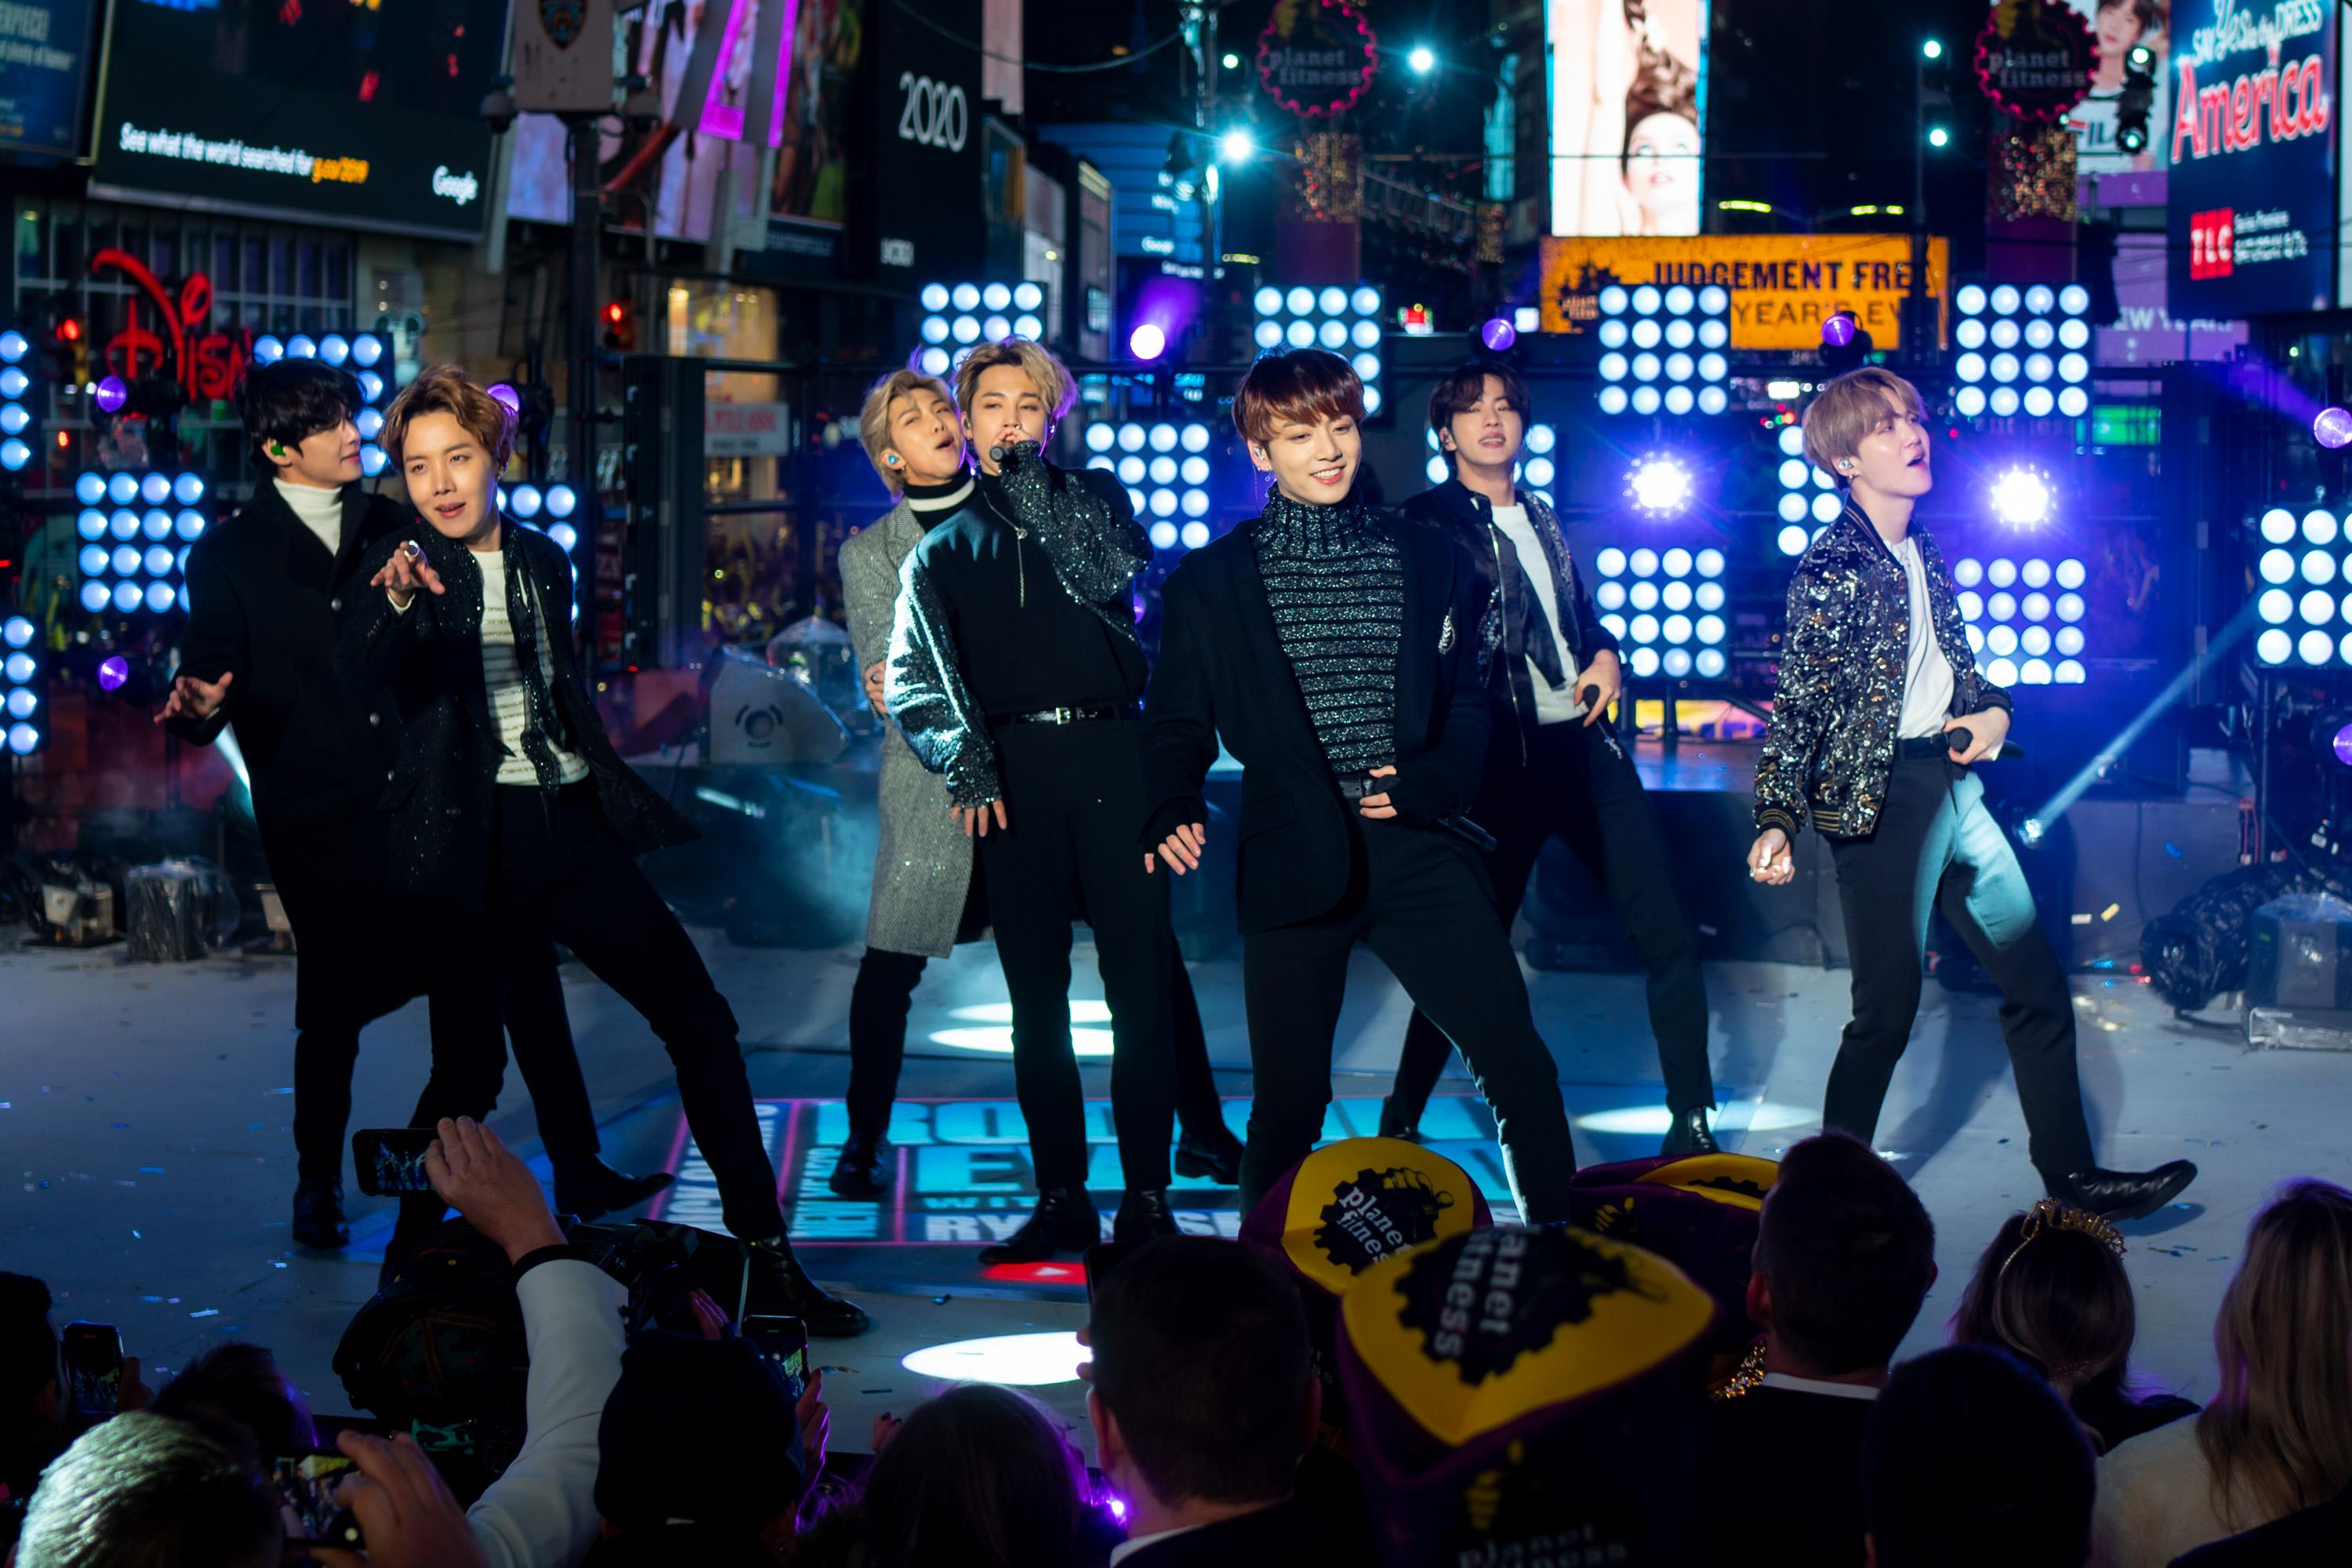 NEW YORK, NEW YORK - DECEMBER 31: BTS performs during the Times Square New Year's Eve 2020 Celebration on December 31, 2019 in New York City. (Photo by Michael Stewart/WireImage,)